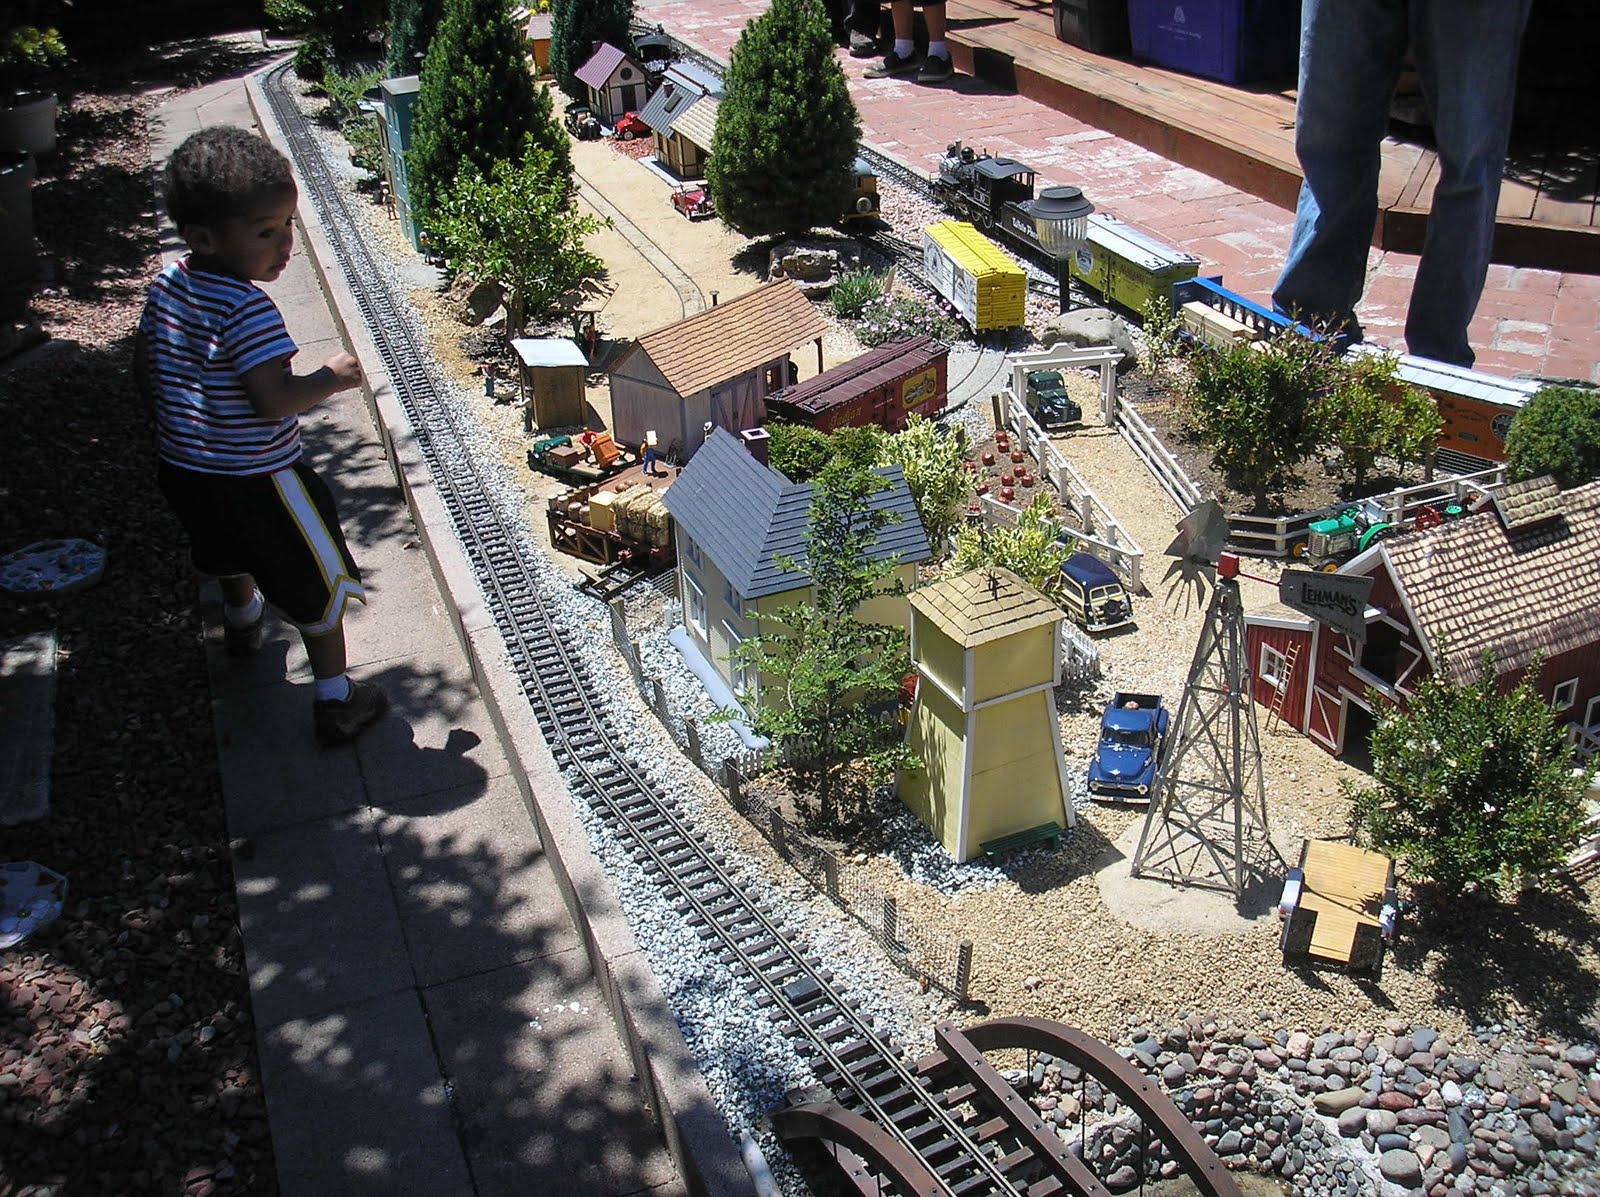 A Few Weekends Ago I Went On A Fund Raising Tour Presented By The Bay Area  Garden Railway Society To See Several Gardens On The Gilroy And Morgan Hill  Area.